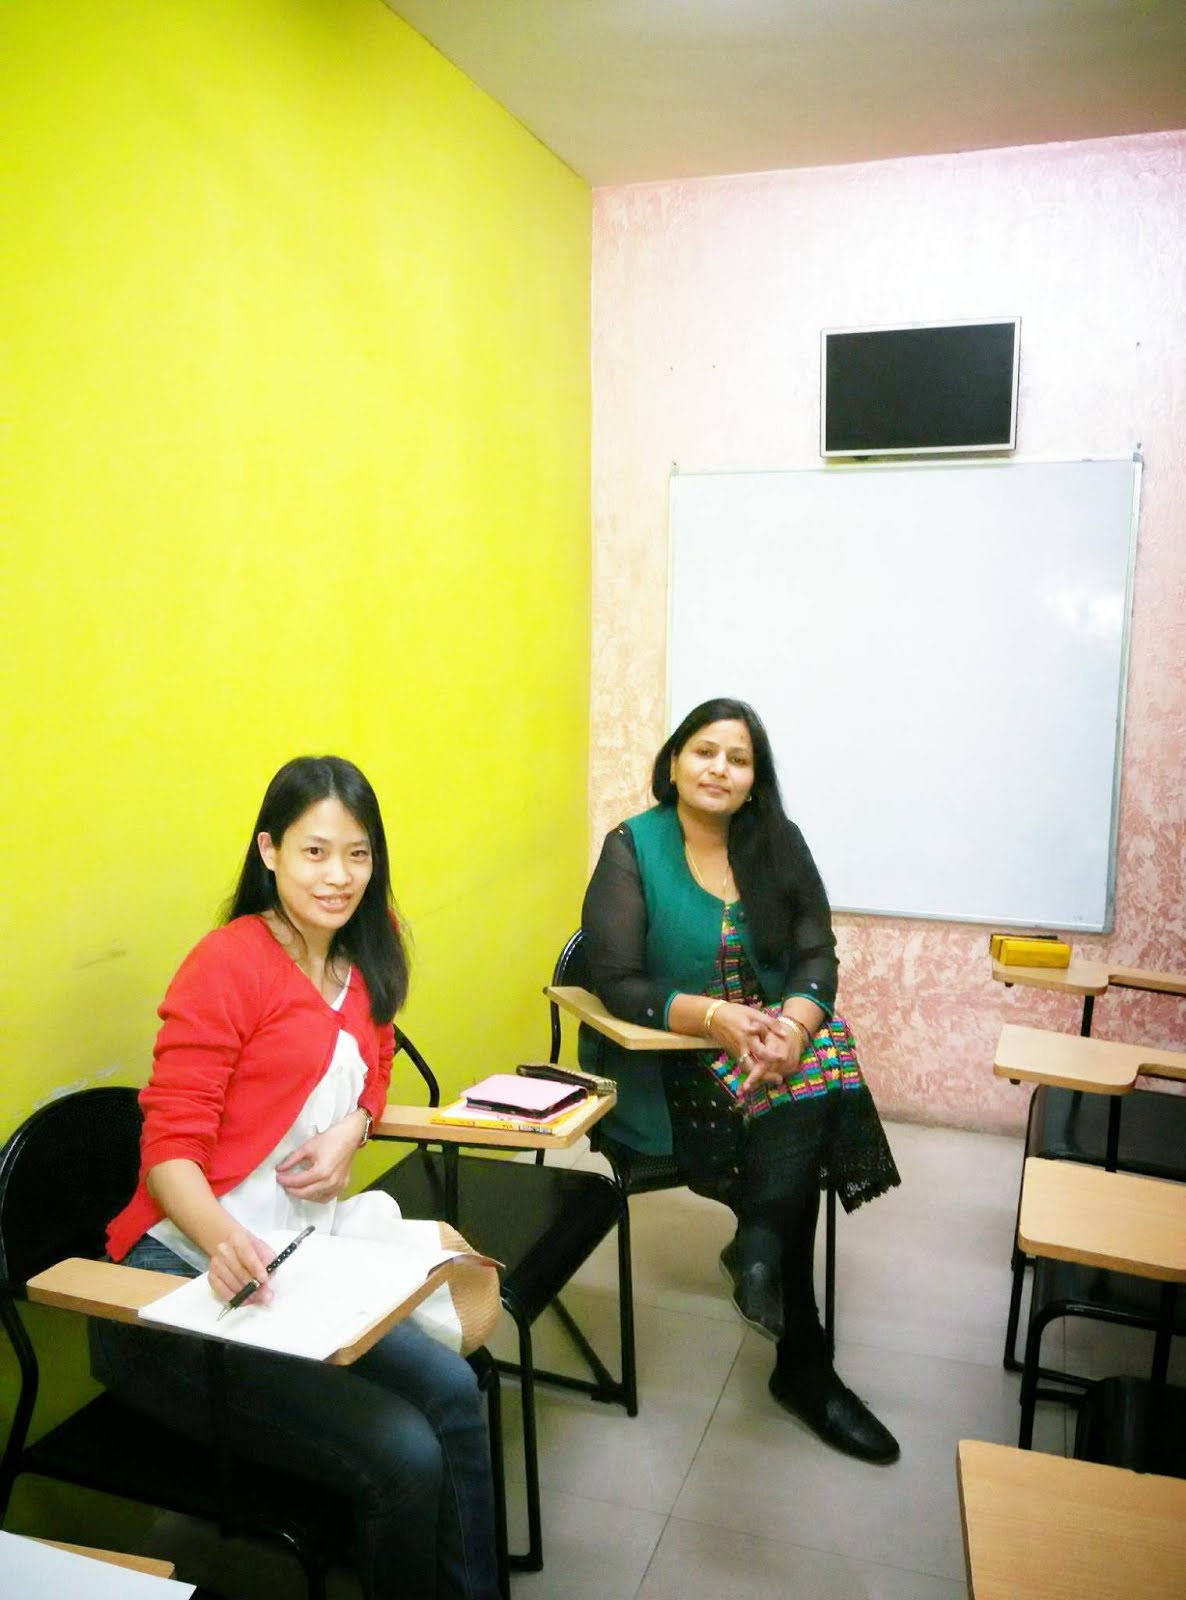 japanese language classes in chandigarh